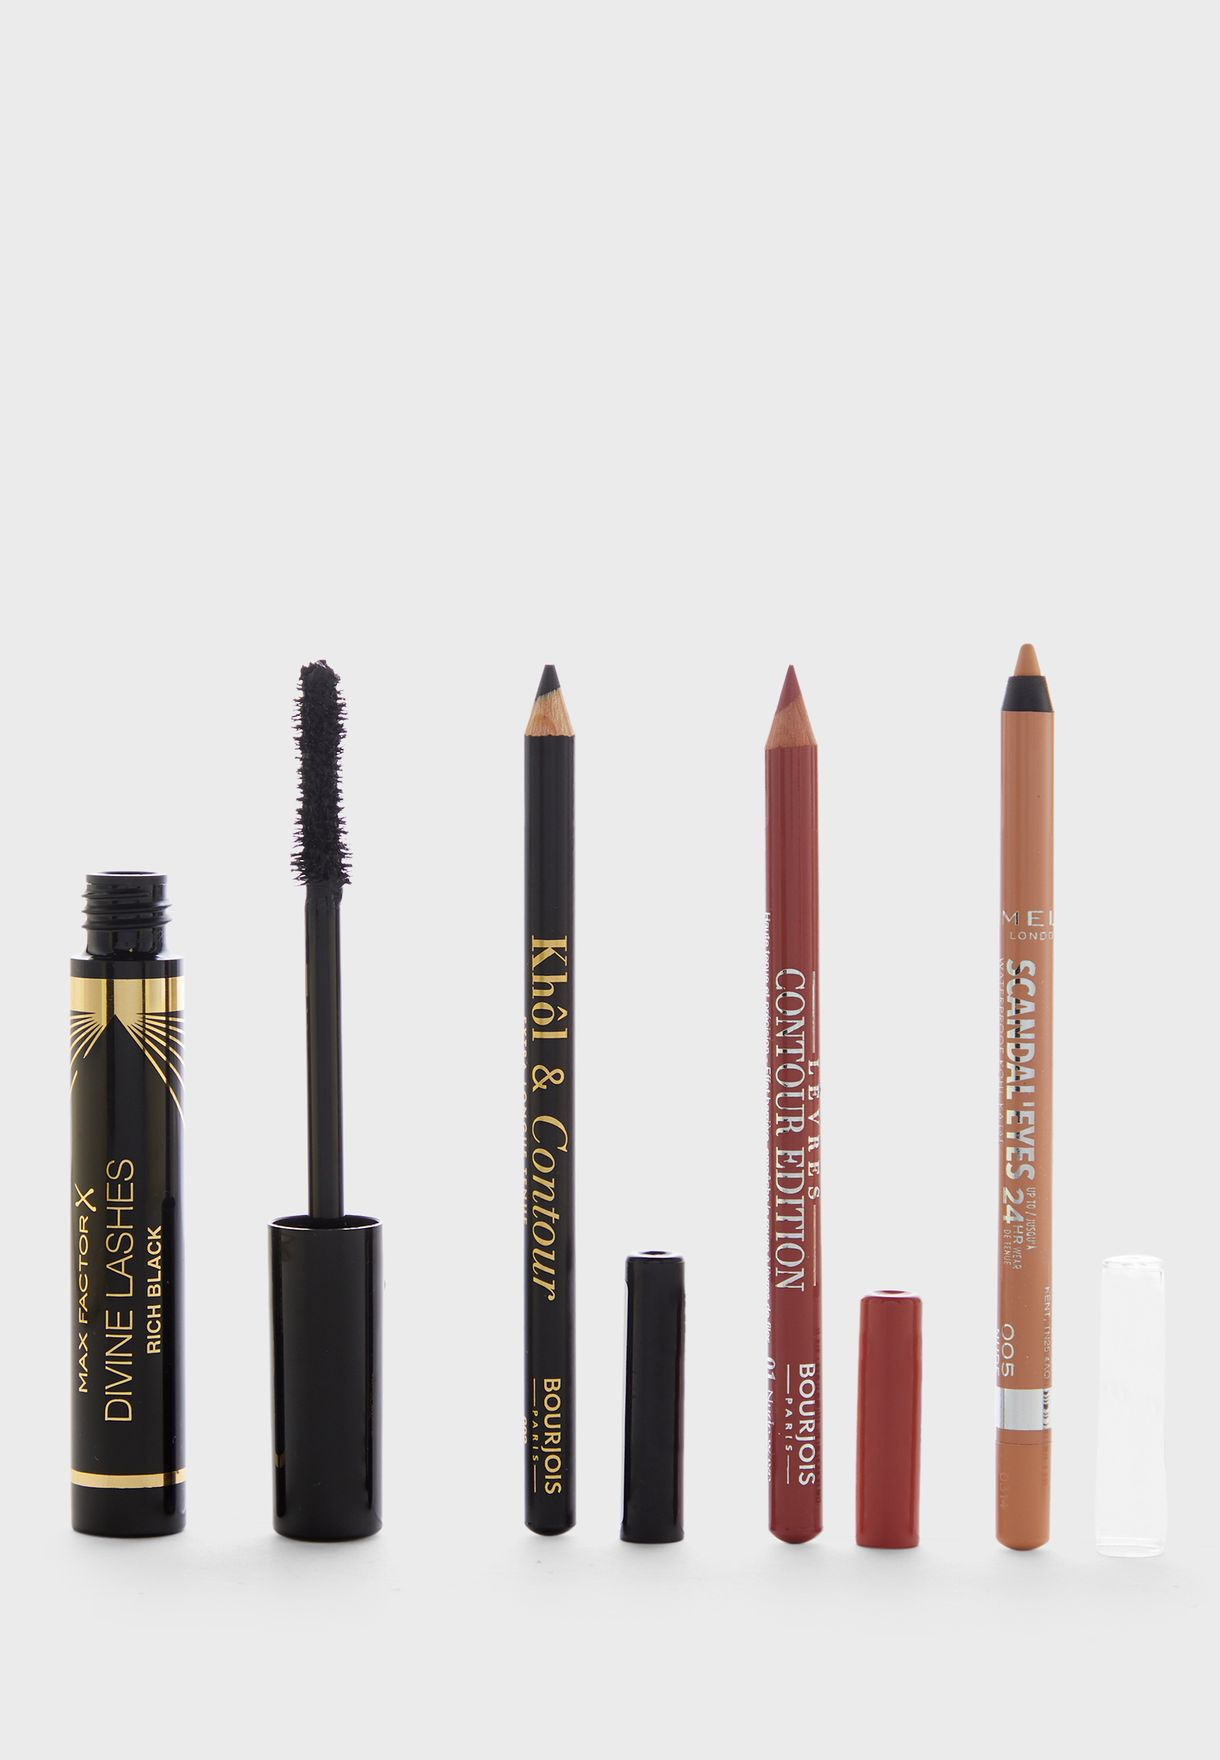 The Ultimate Make-Up Essentials 10 Day Countdown